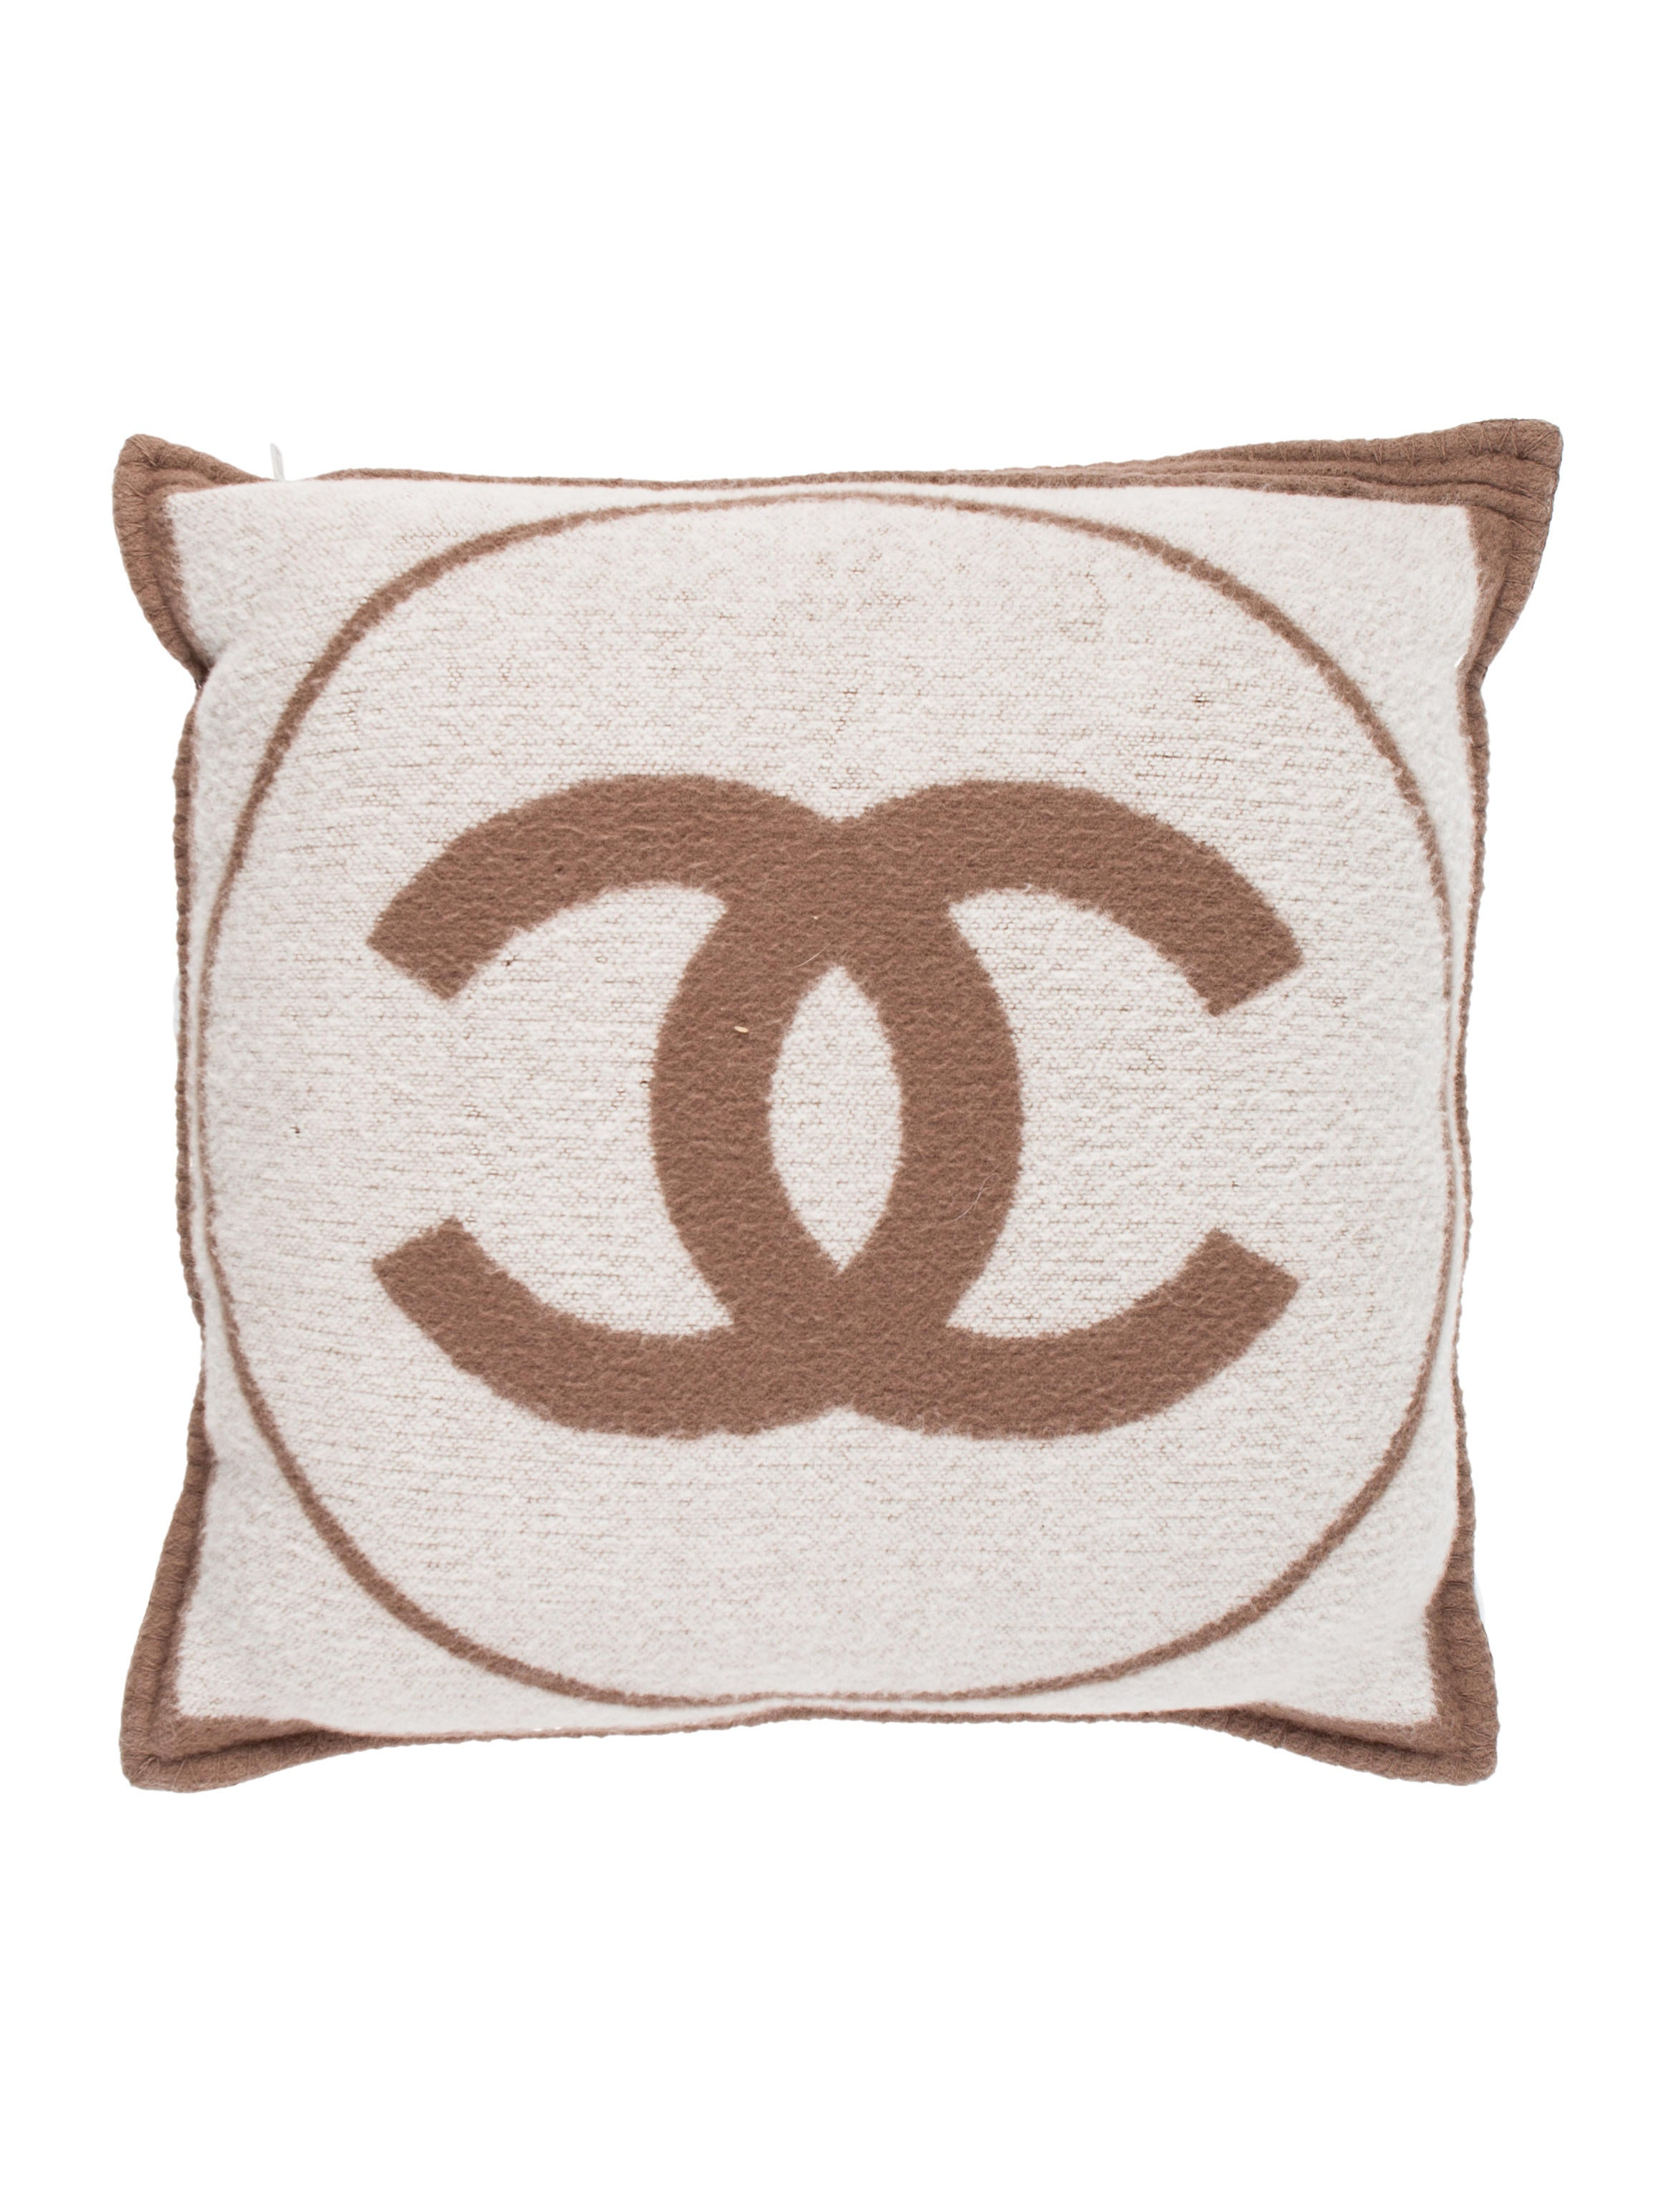 Black Chanel Throw Pillow : Chanel Wool & Cashmere Throw Pillow - Pillows And Throws - CHA229261 The RealReal